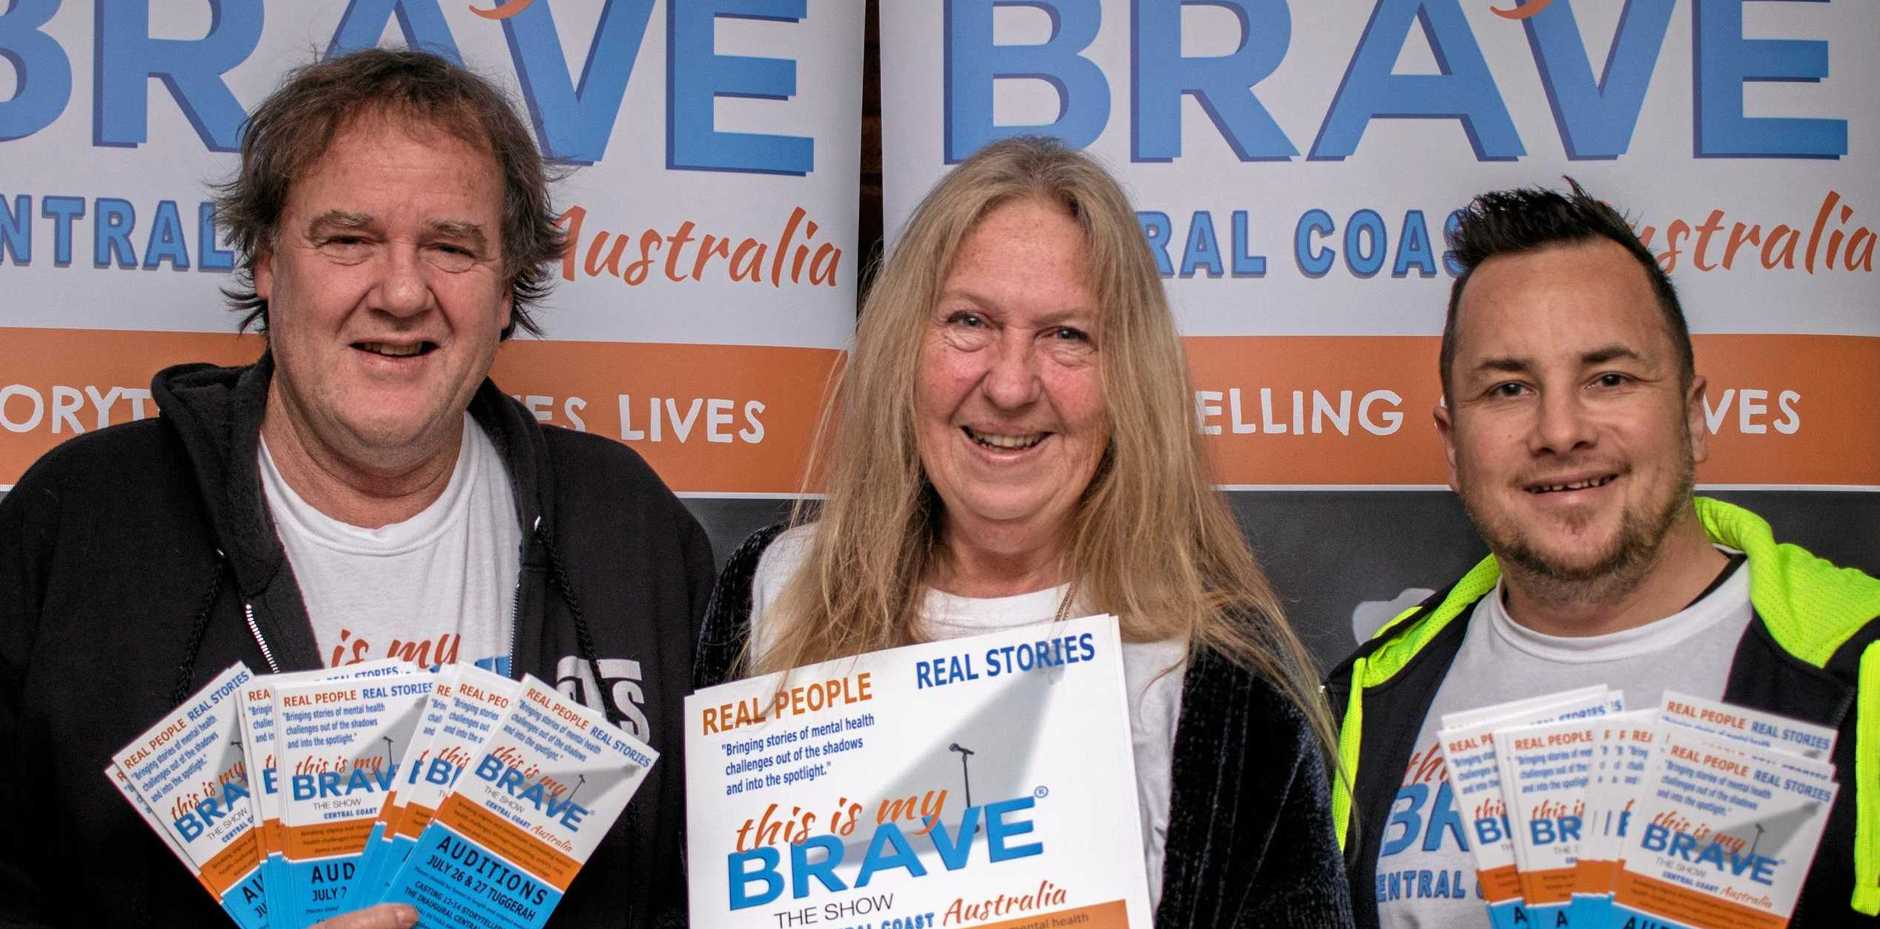 BE BRAVE: This is My Brave Australia - Central Coast show producers Ross Beckley and Veronique Moseley, of Behind the Seen, and Greg Smith, of Men Care Too.